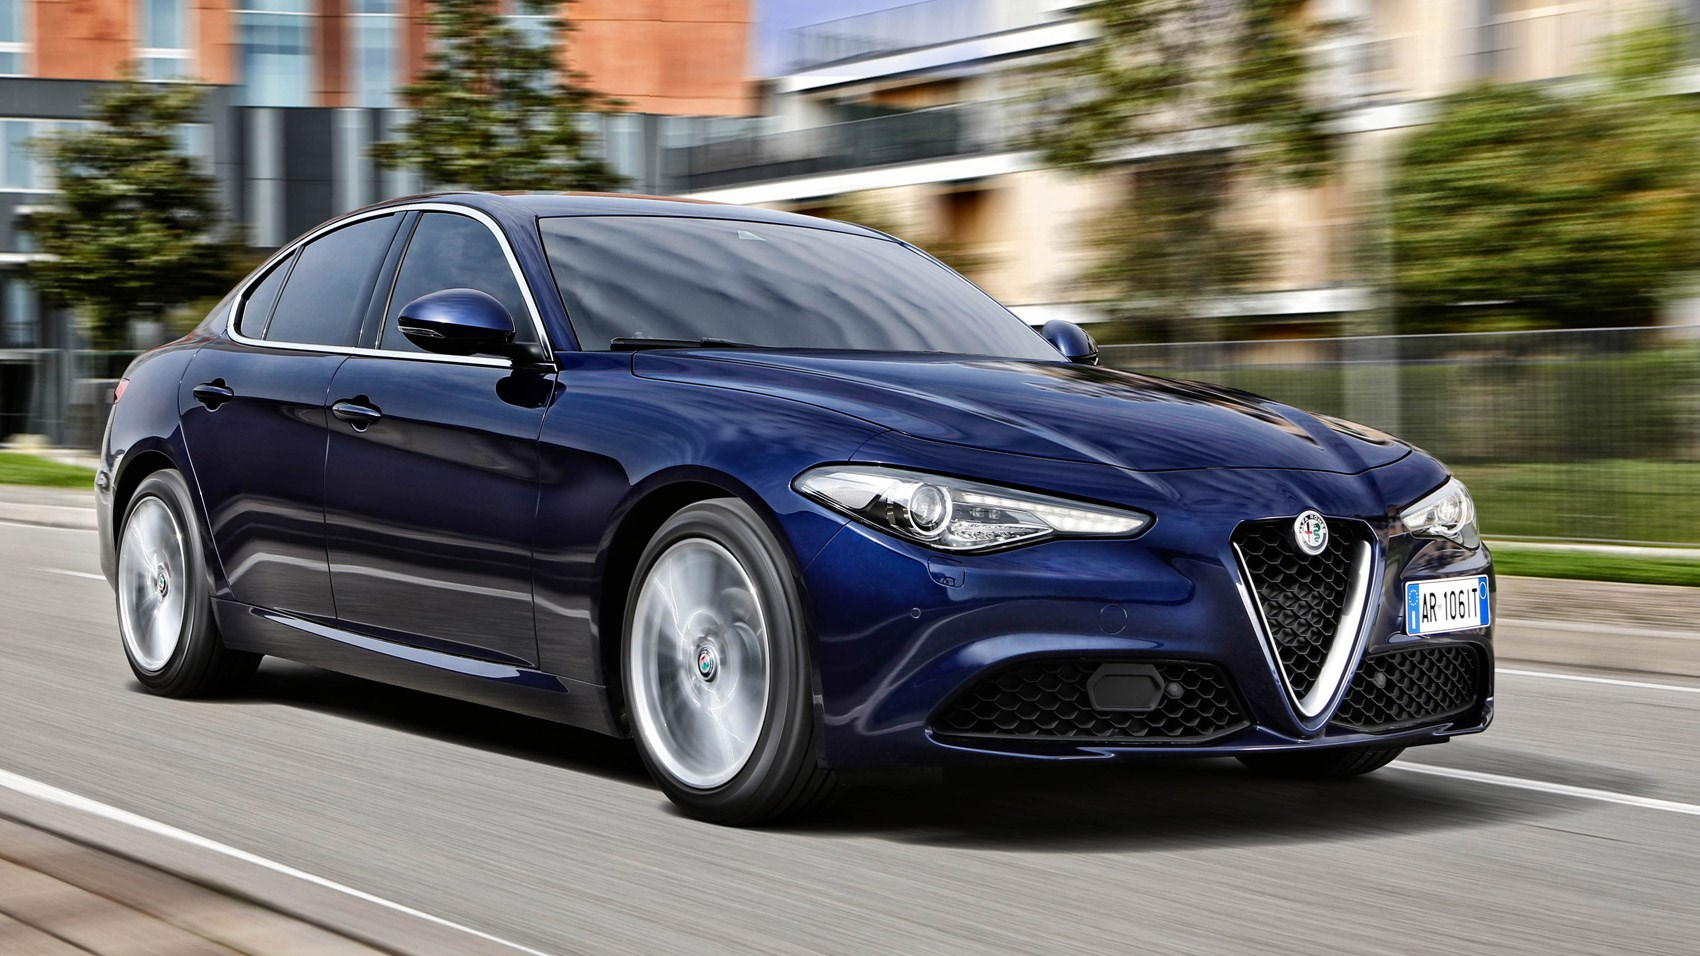 Alfa romeo giulia 2 2 multijet 180 diesel 2016 review by for Auto interieur tuning